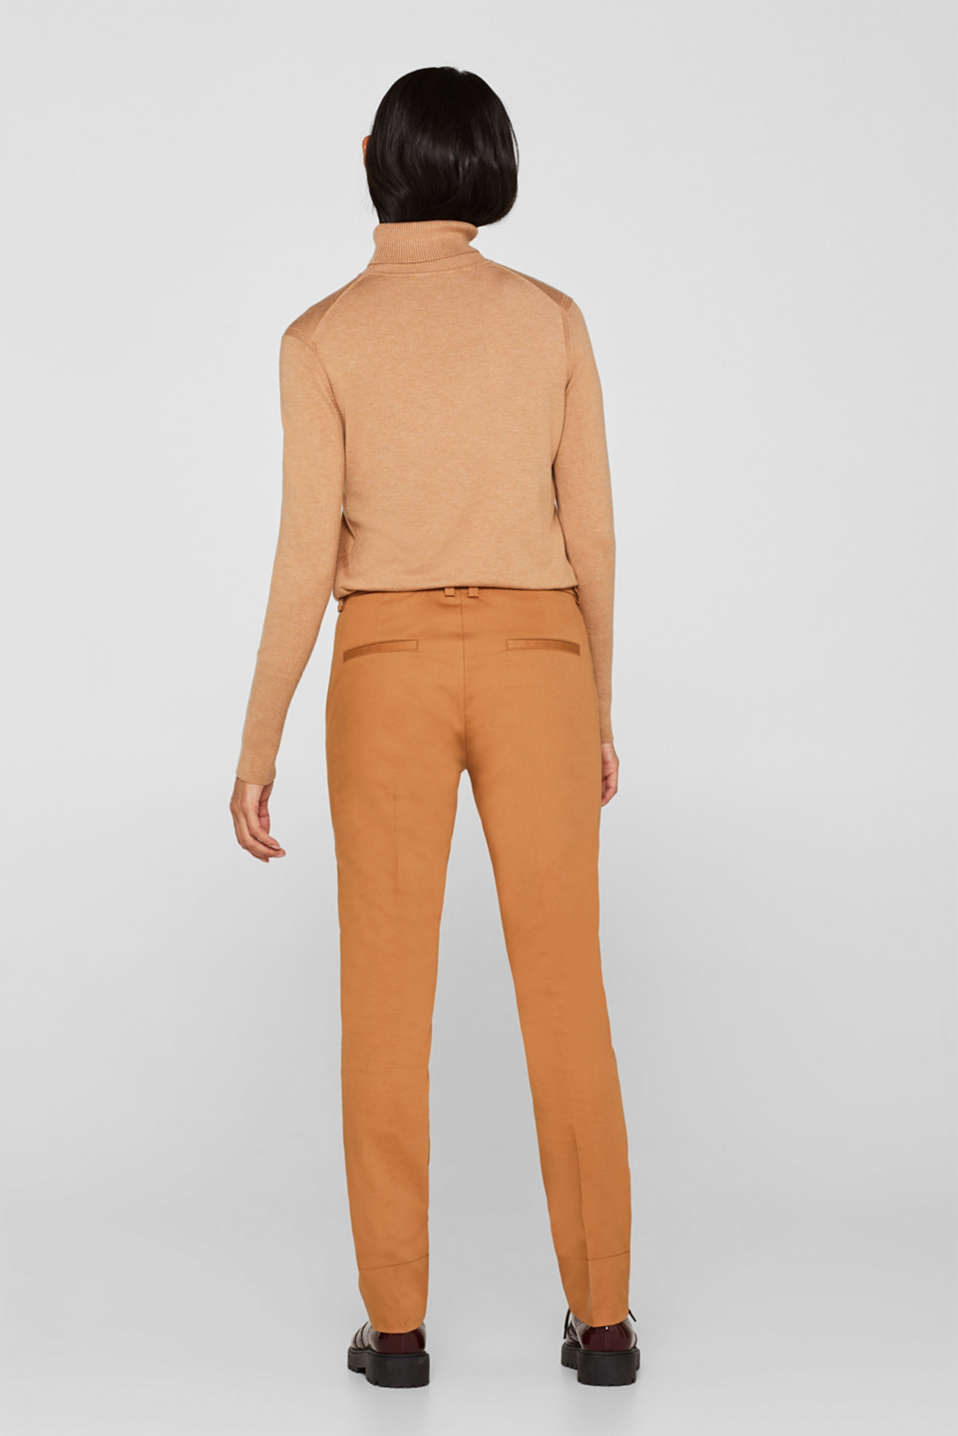 Cotton twill chinos, CAMEL, detail image number 3